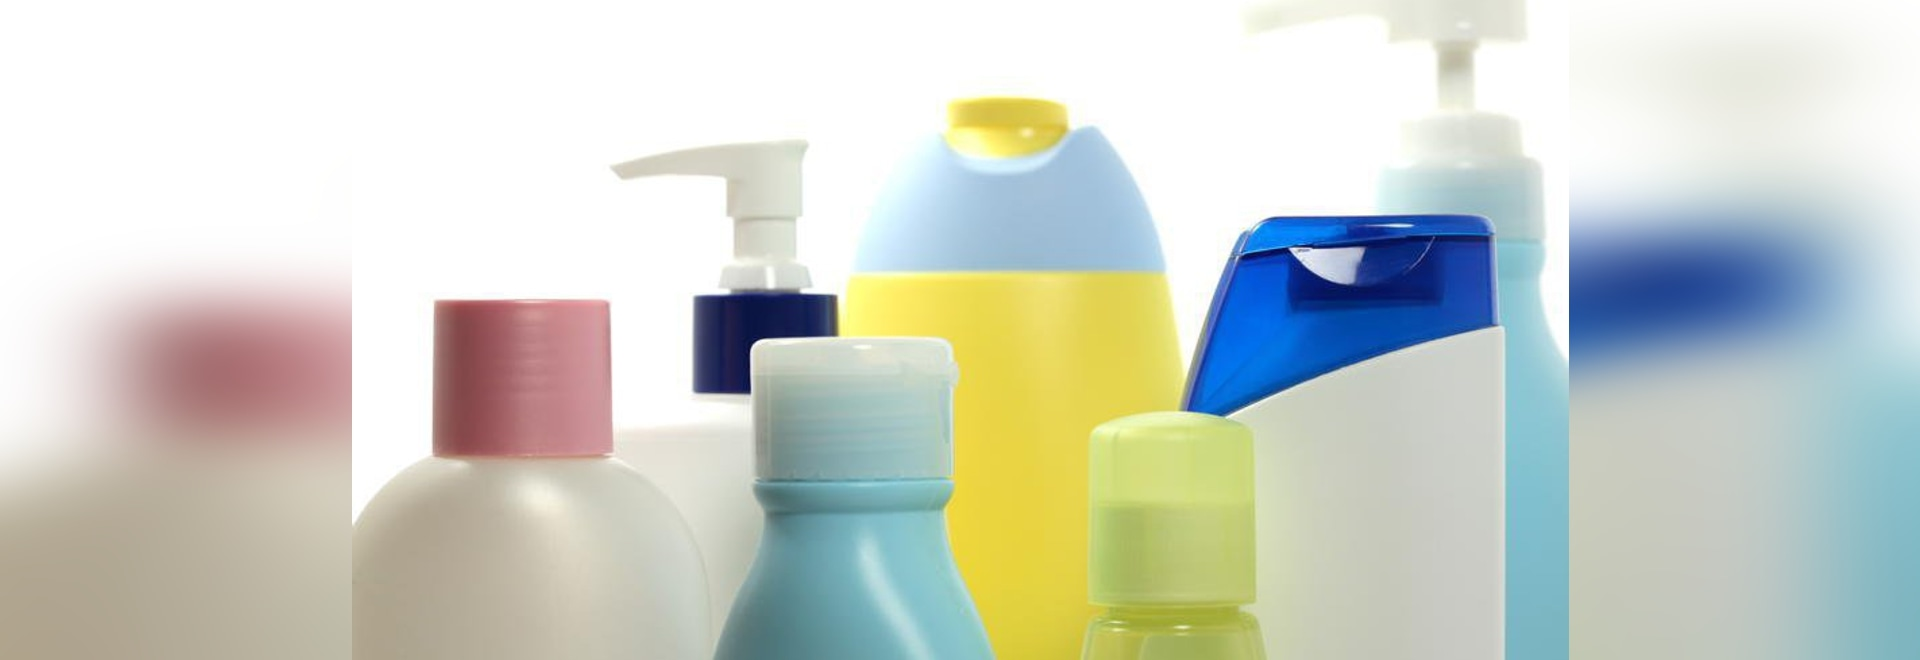 A new report forecasts rigid plastic packaging sales will grow 4.2% per year during the 2019 to 2024 time frame.